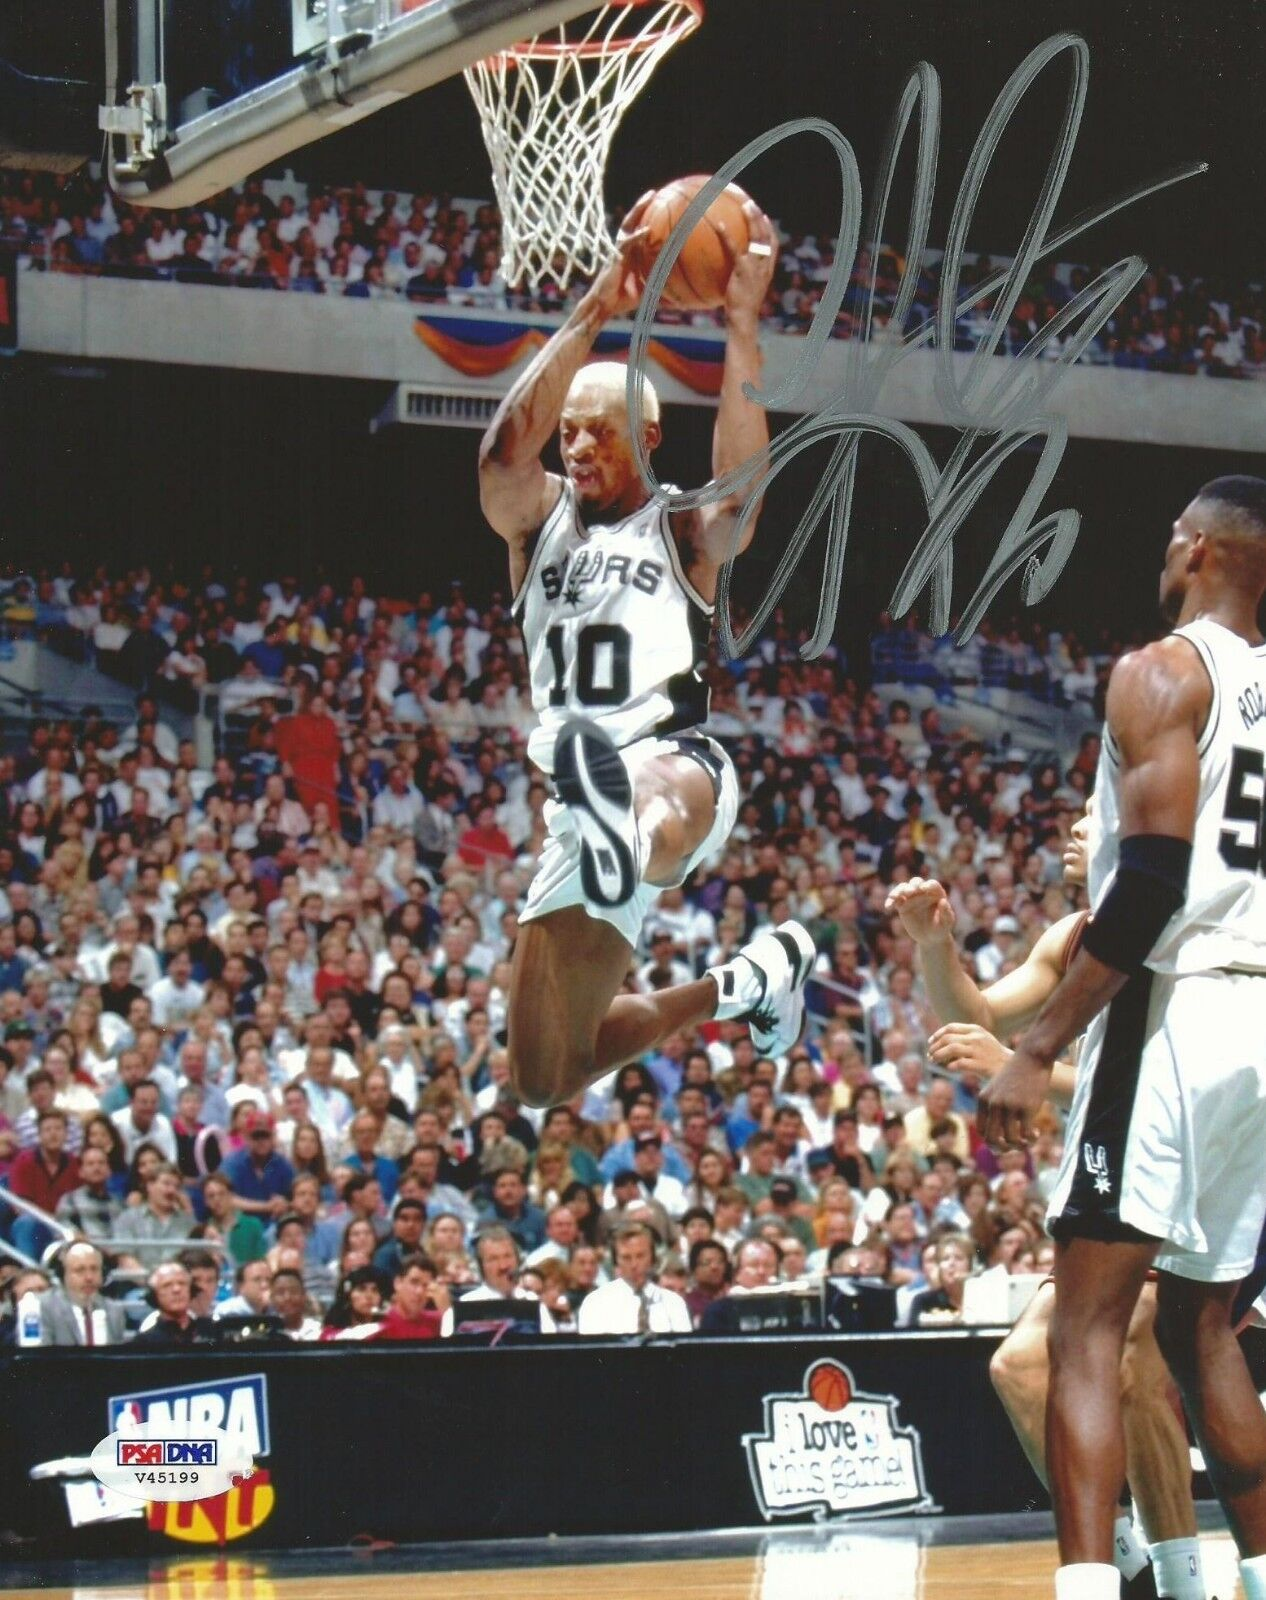 Dennis Rodman Signé Spurs 8x10 Photo PSA   DNA COA Image Autographe Hall Of Fame